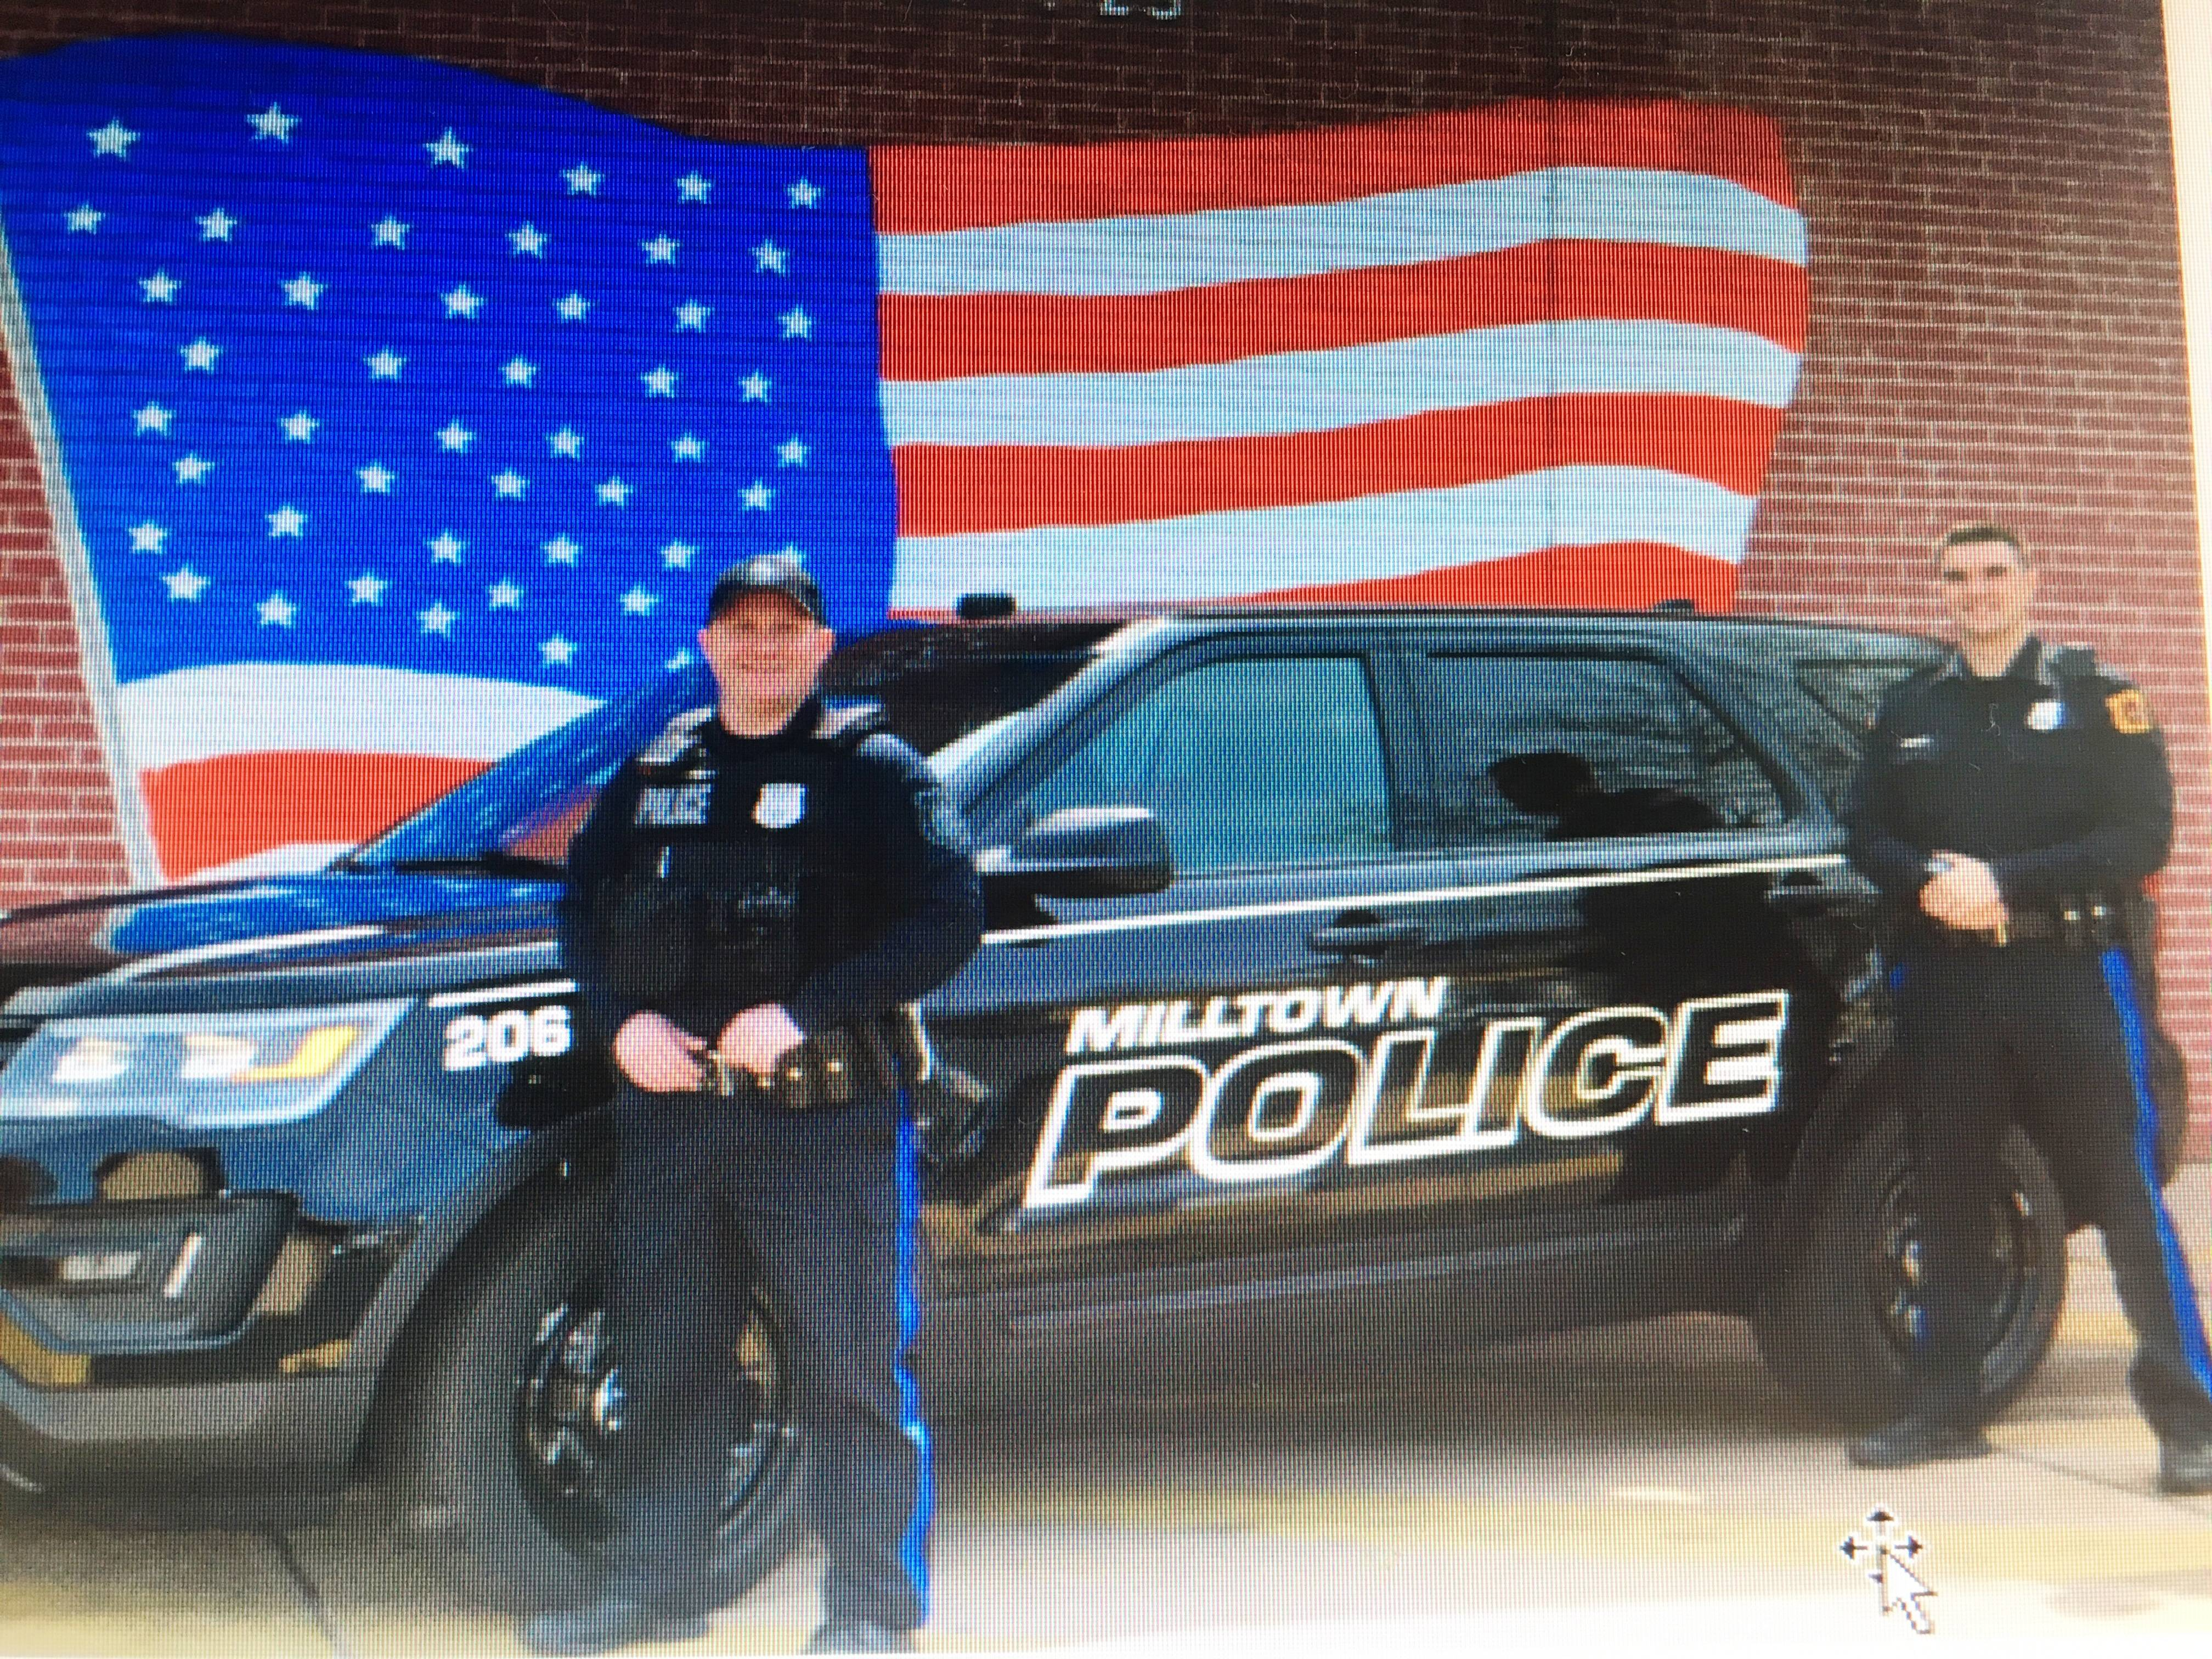 milltown police department s a new look east brunswick nj